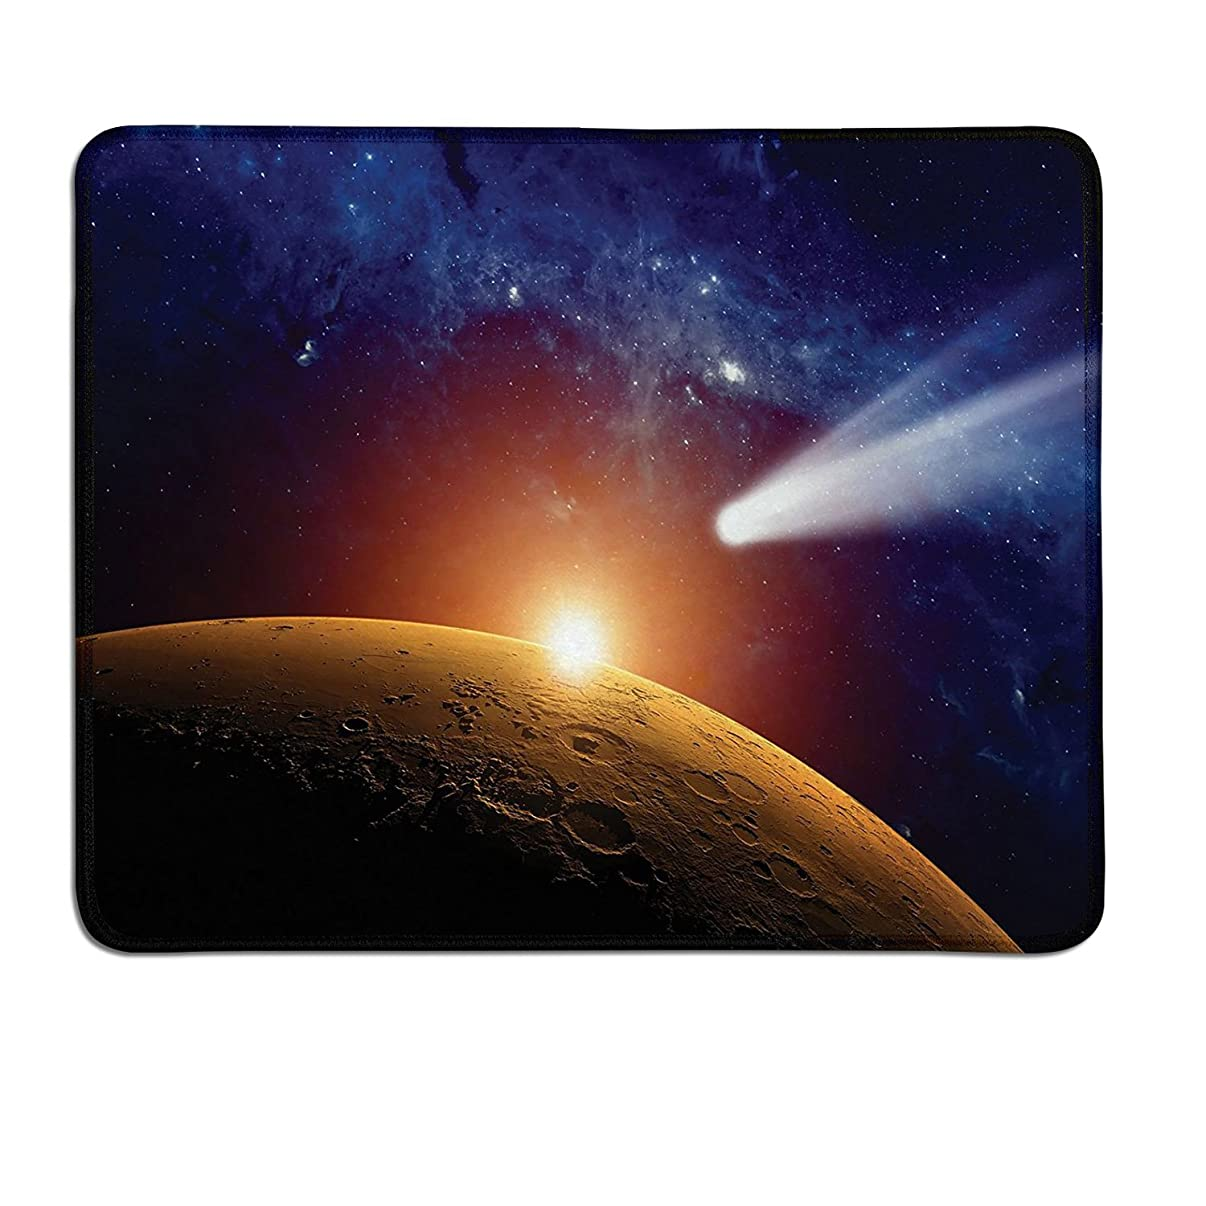 Outer Space personalized mouse pad Comet Tail Approaching Planet Mars Fantastic Cosmos Dark Solar System Scenerydrawing mouse pad Bue Orange